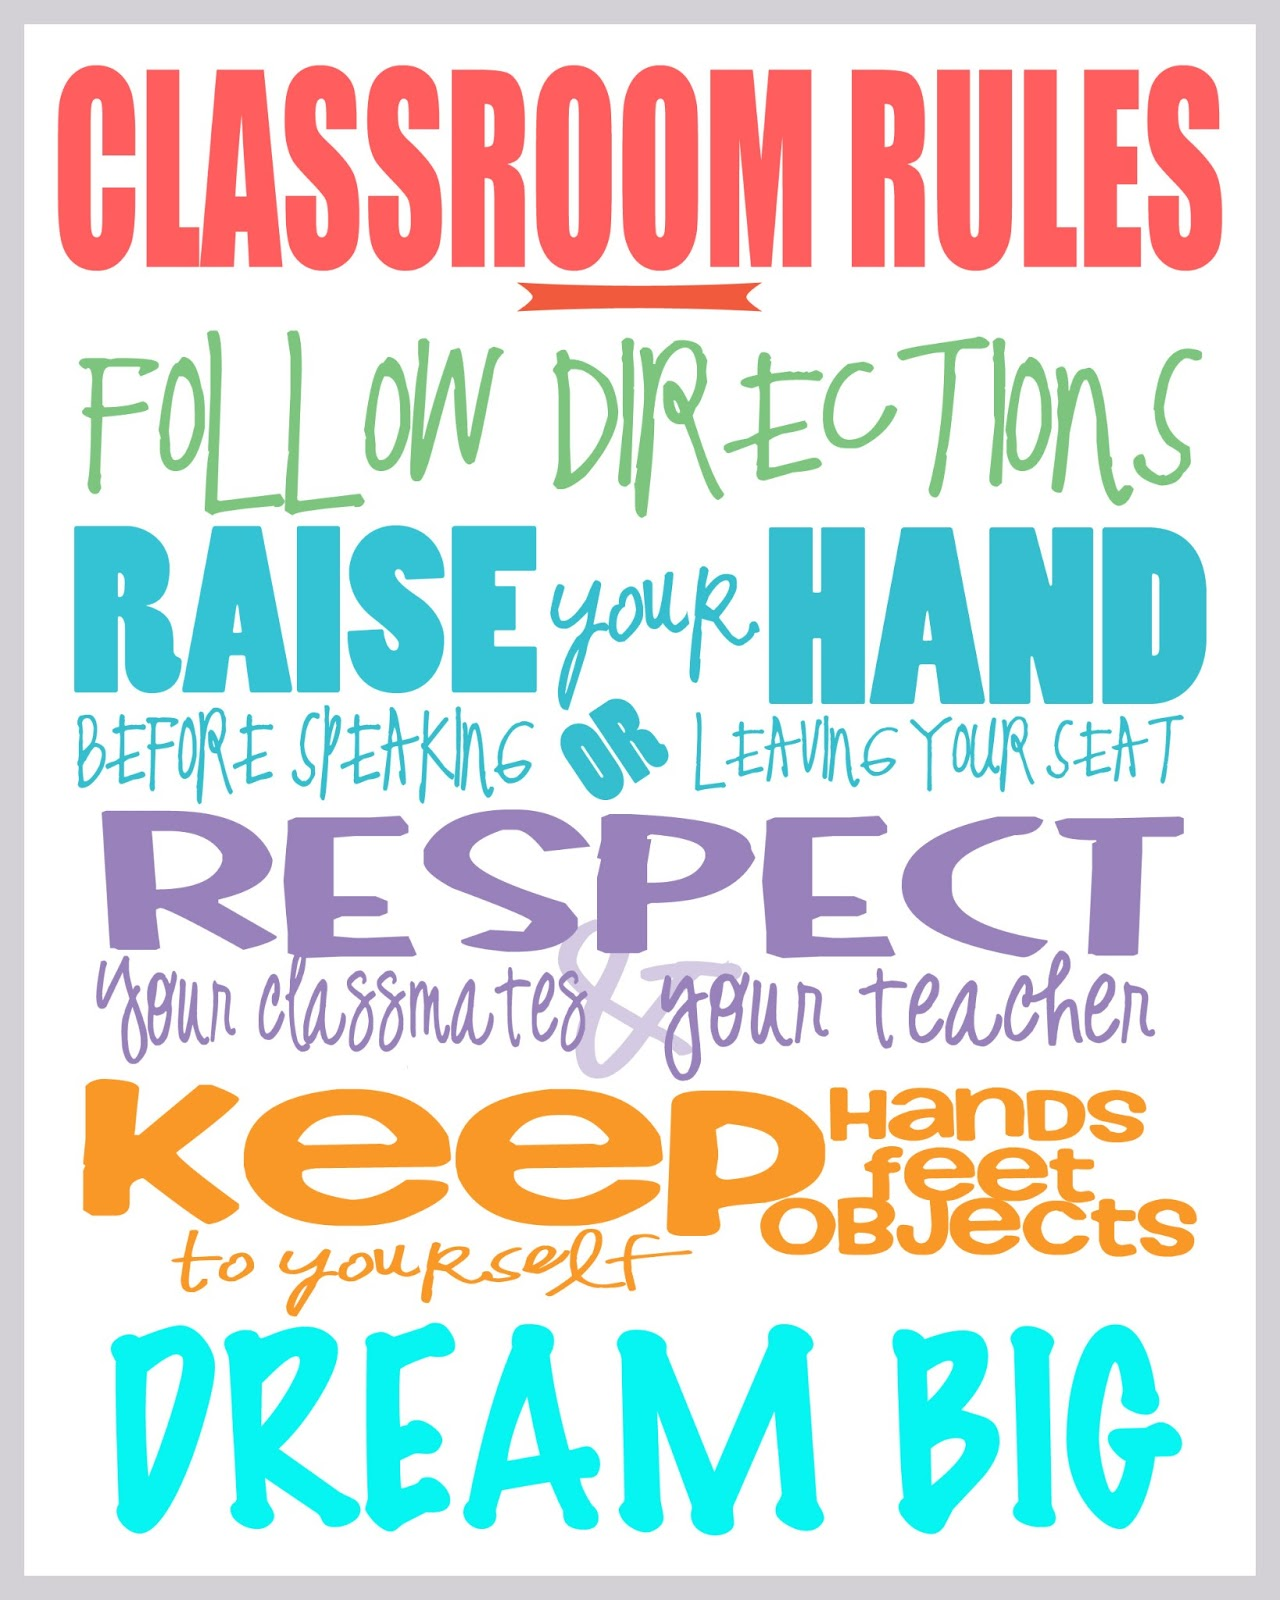 Classroom Rules The Wallace House